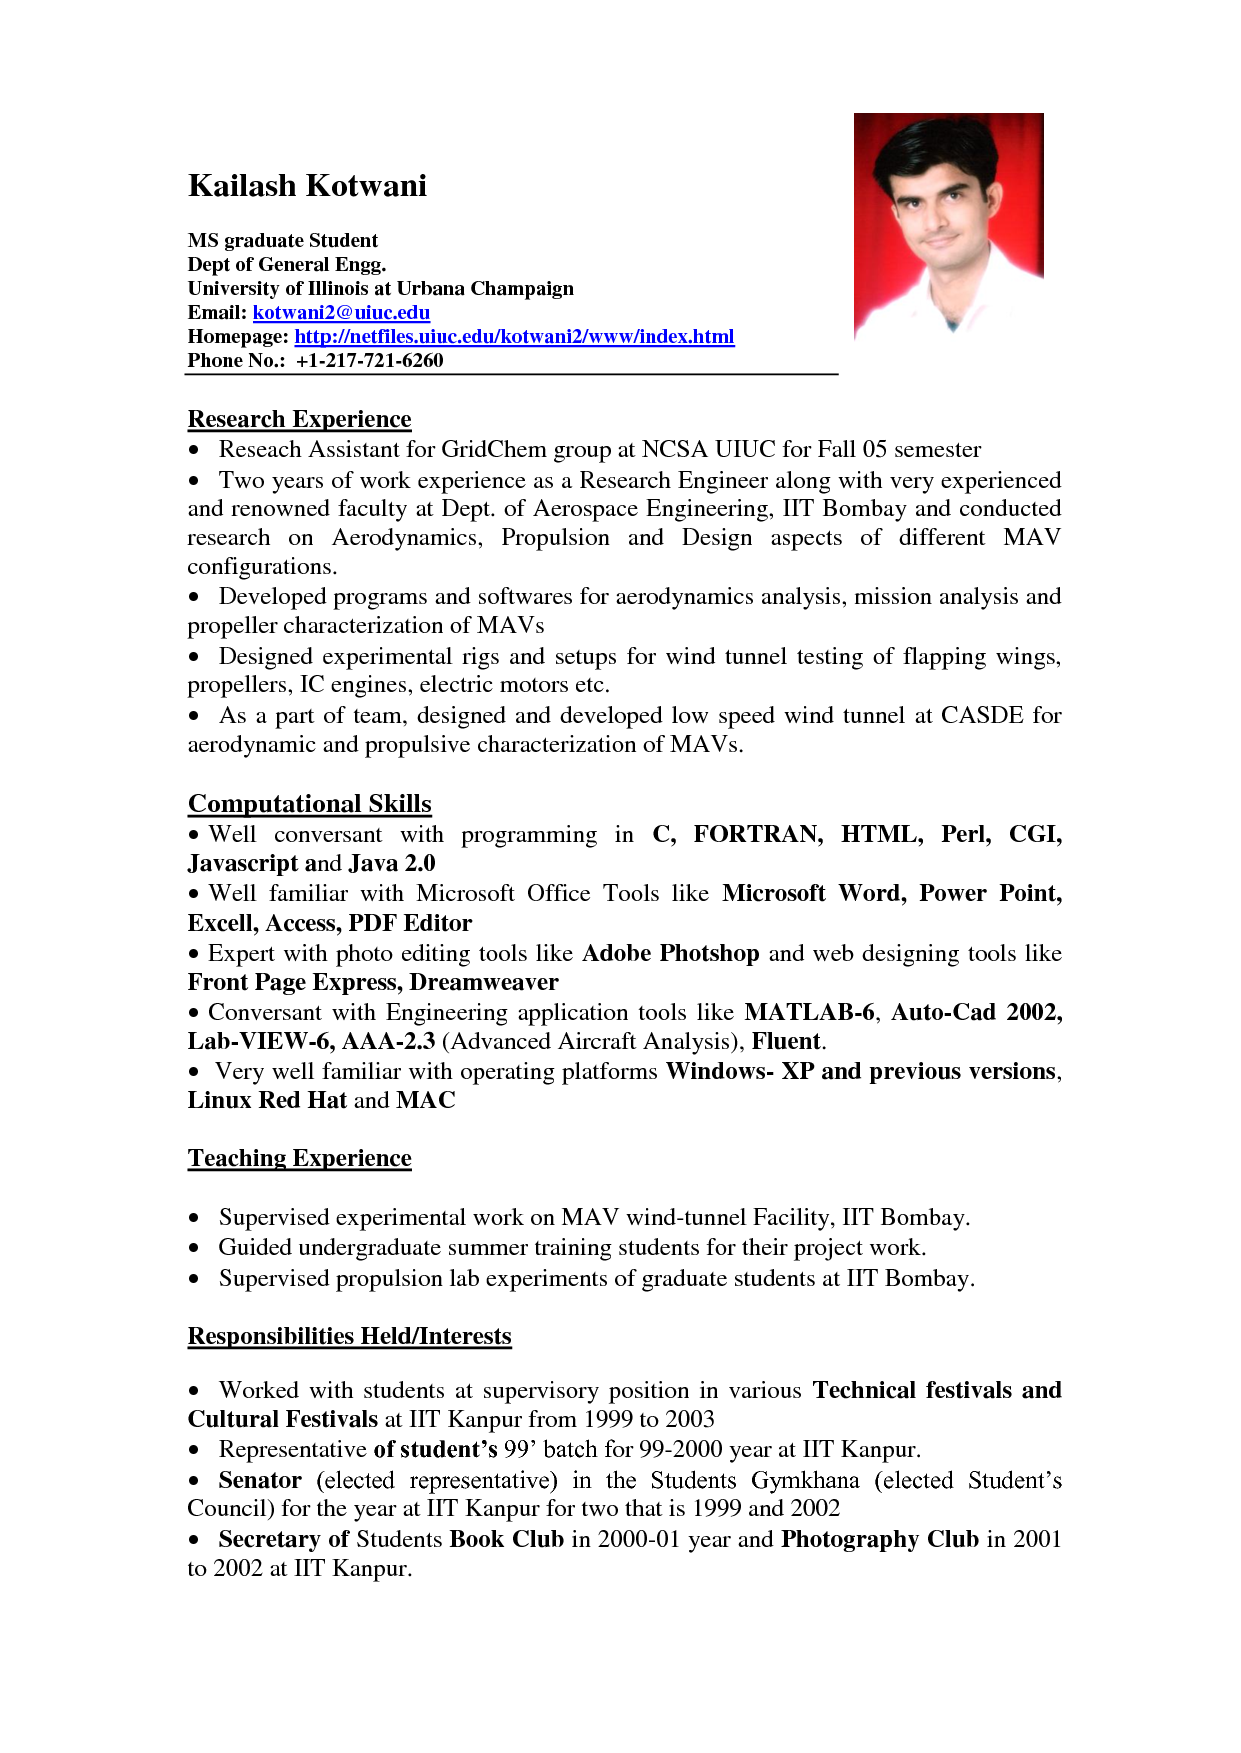 High School Student Resume Examples No Work Experience No Work Experience  Resume Content. How To Write A Resume Resume .  It Resume Example